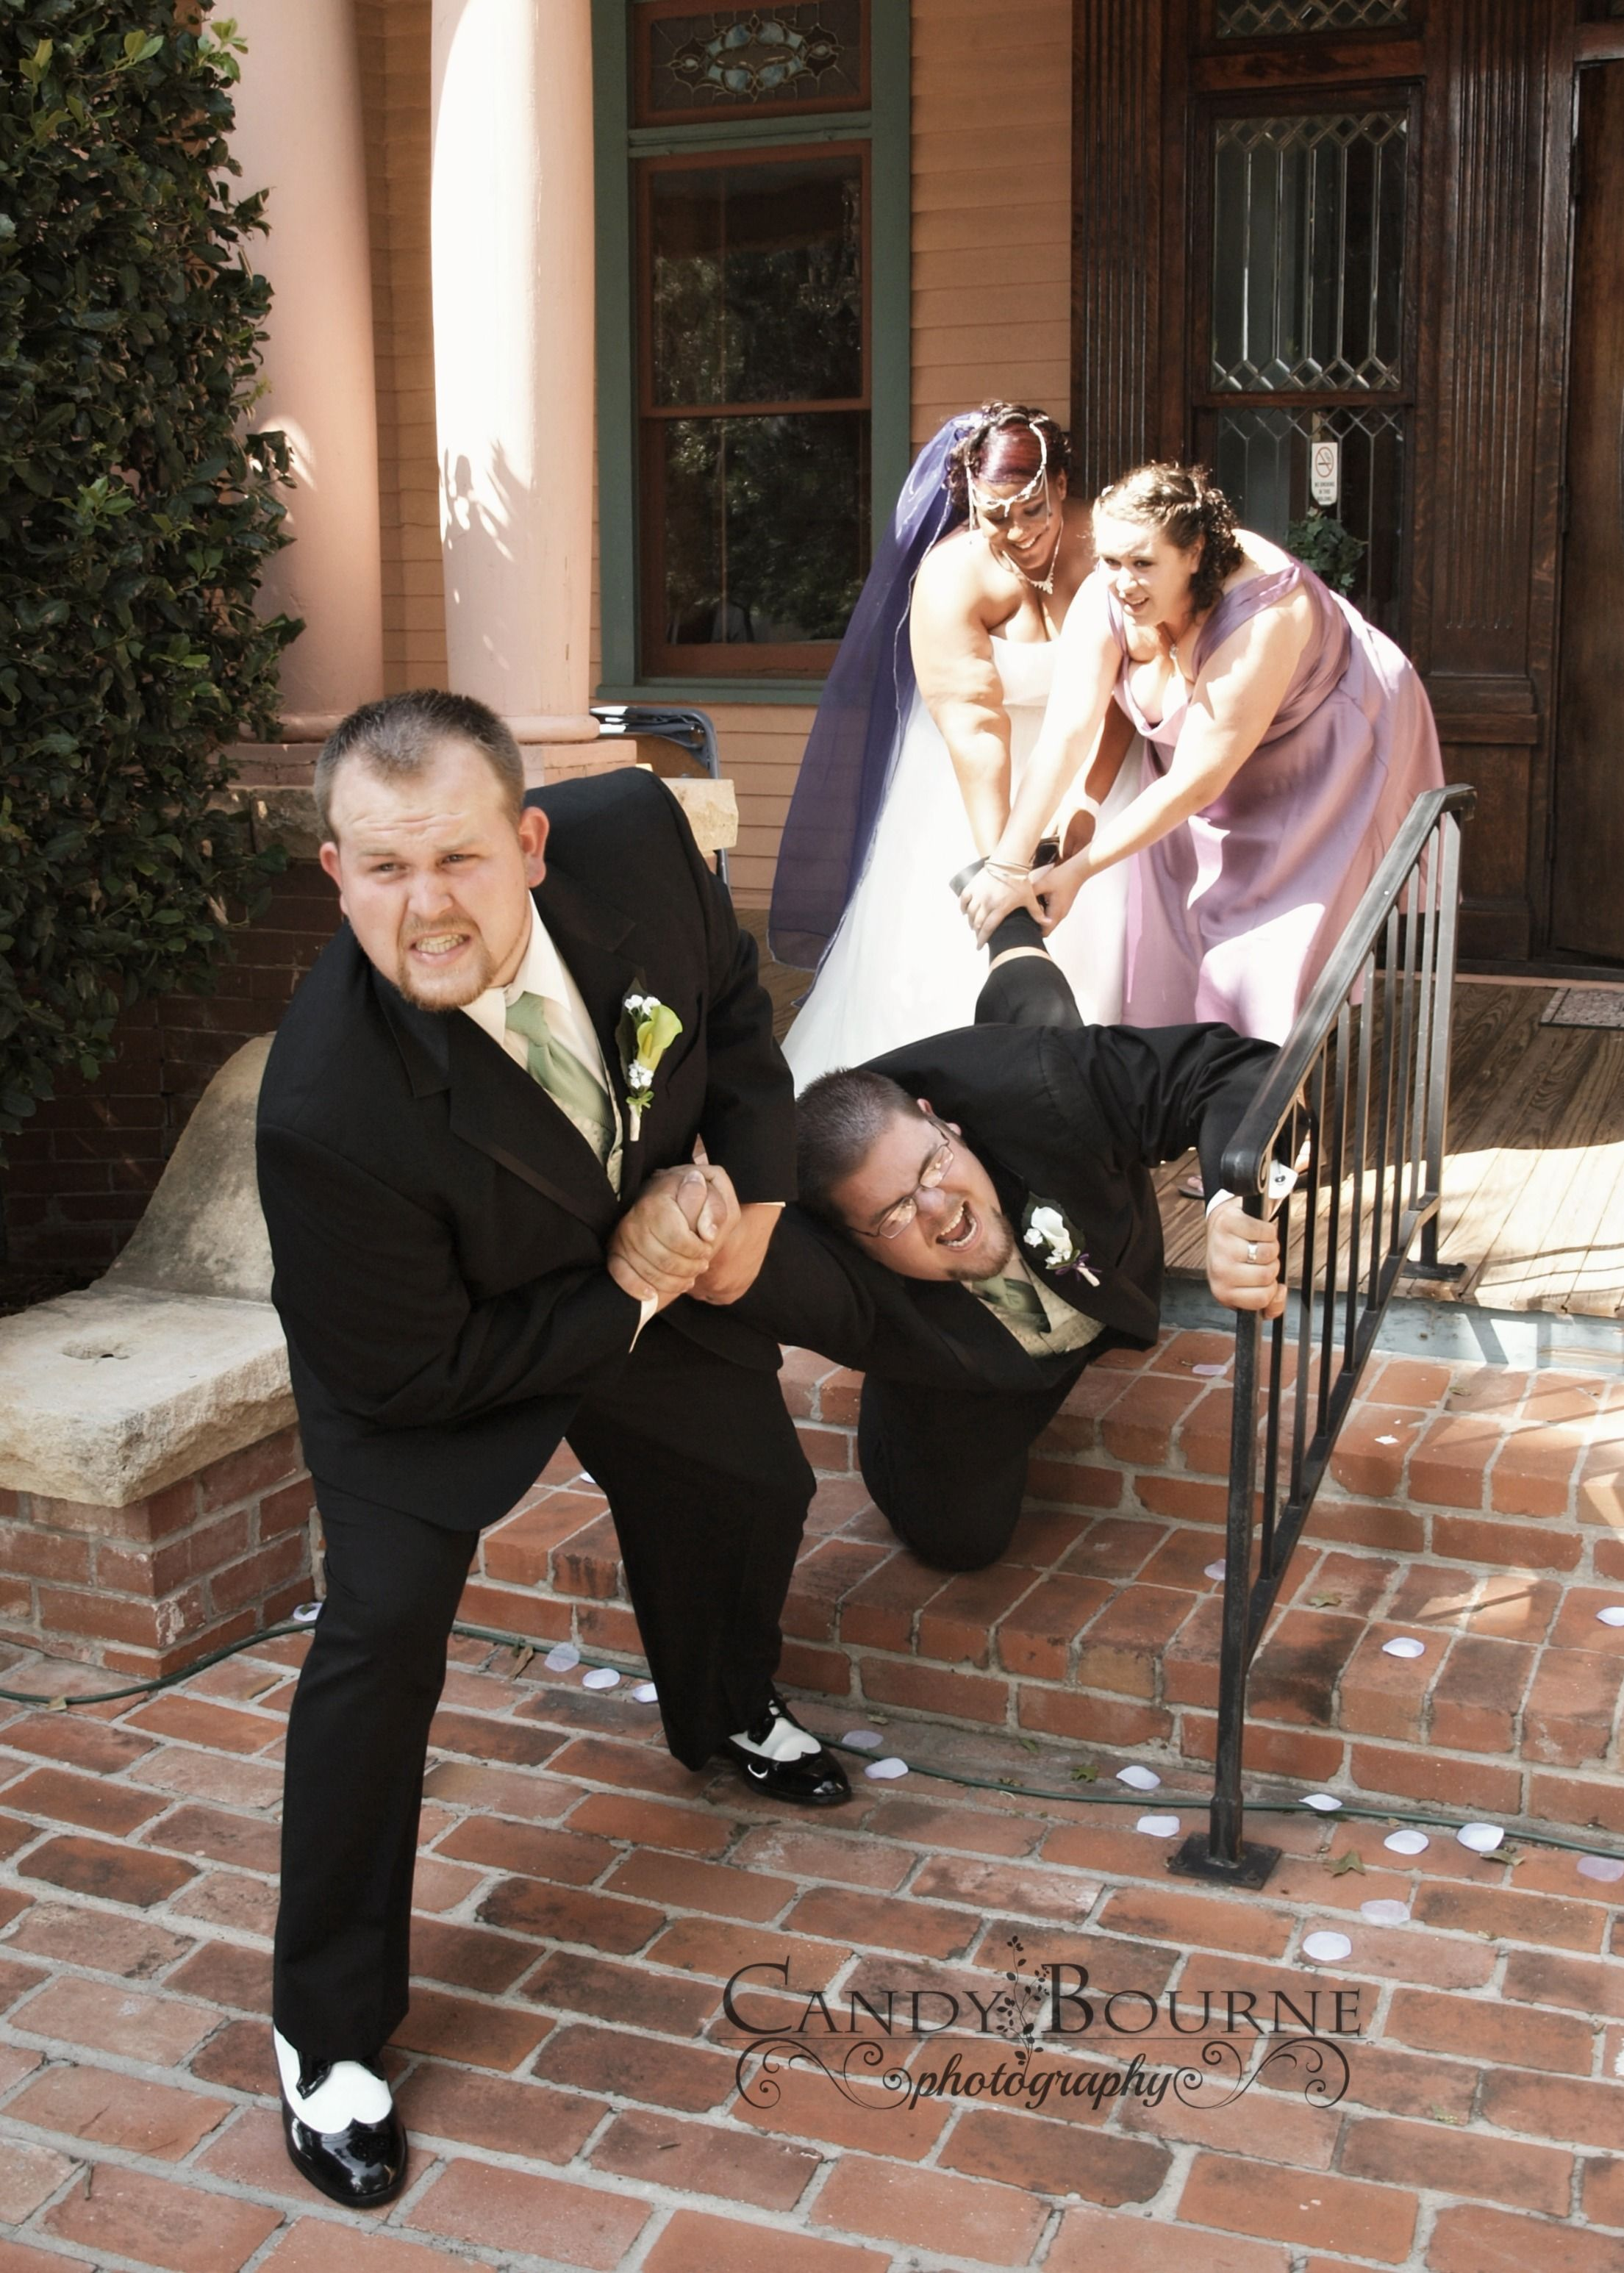 candy bourne photography funny wedding pose best man against bride